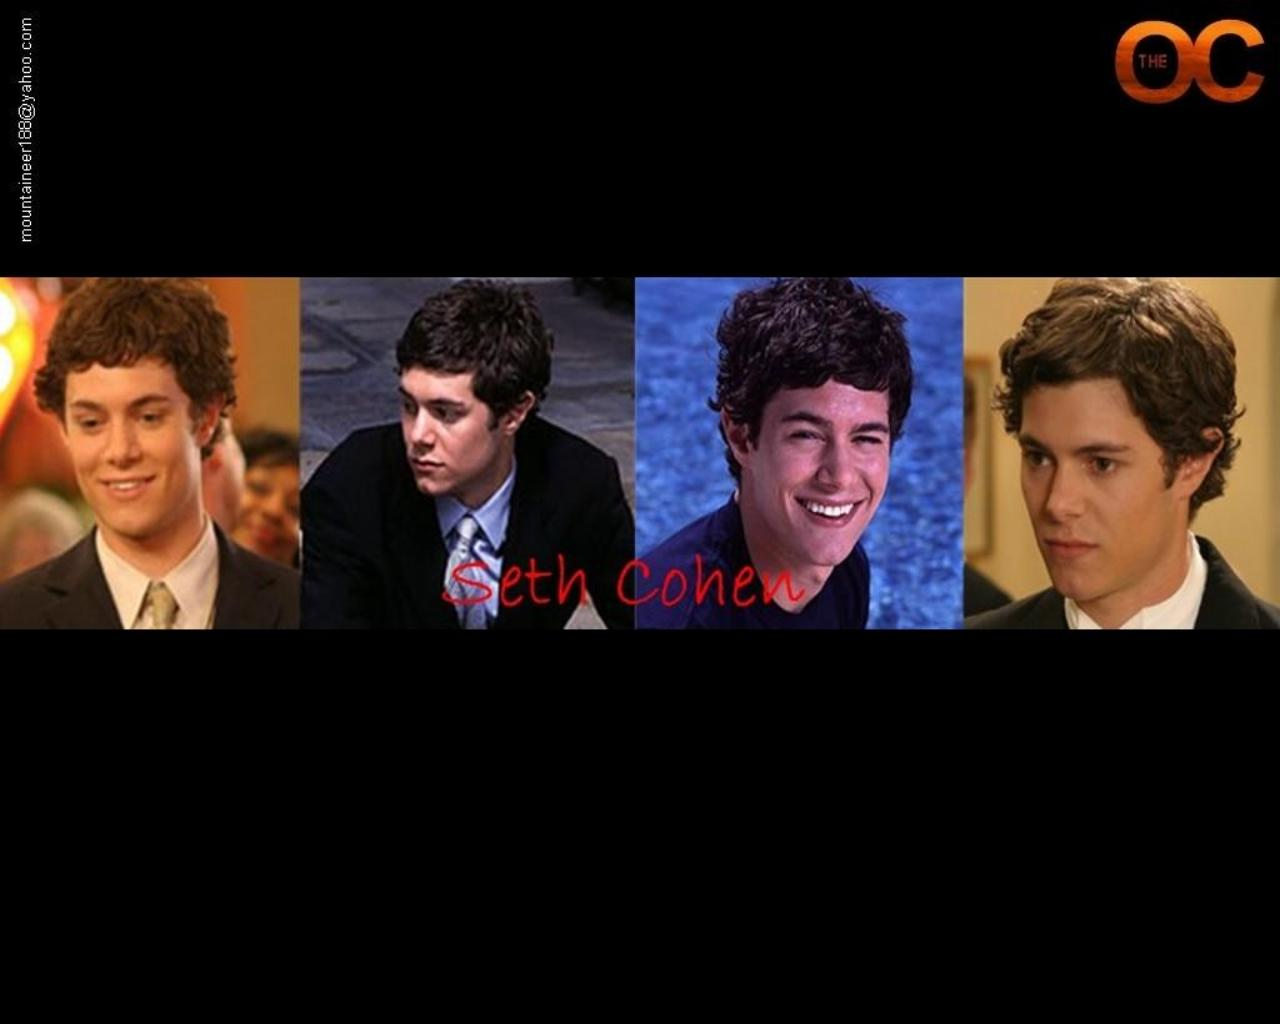 The O.C. Wallpapers From The TV MegaSite